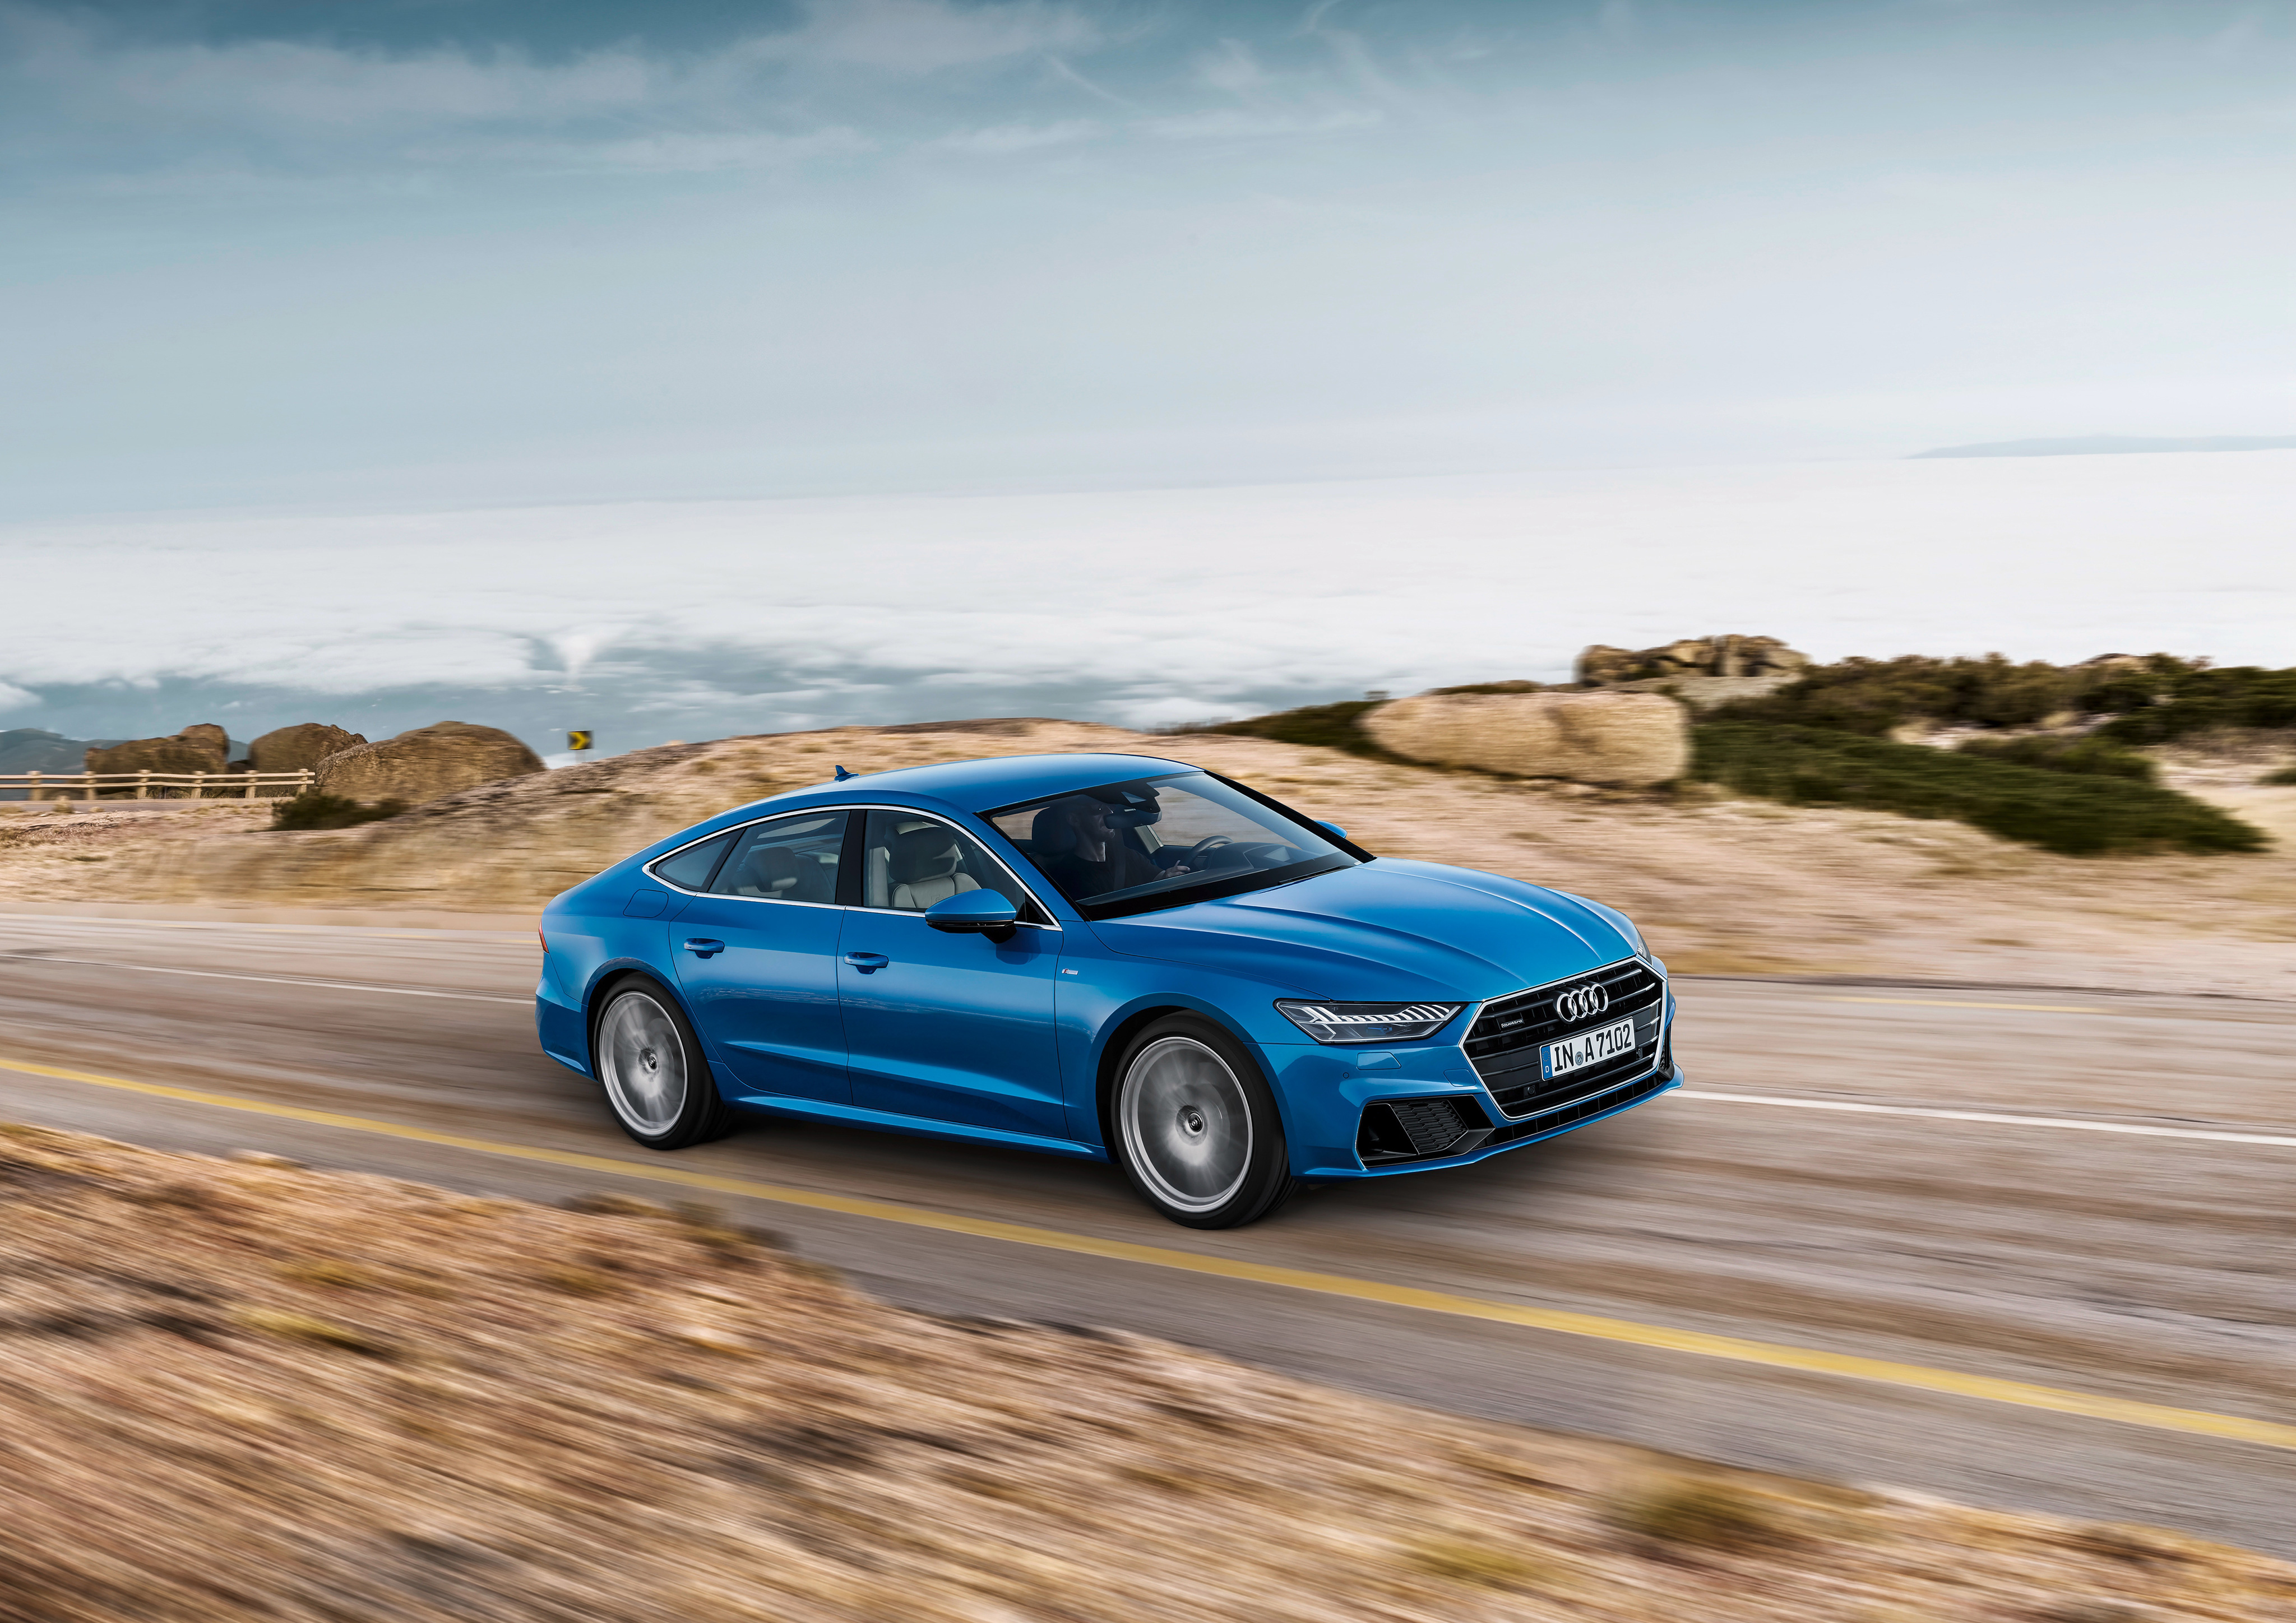 audi a7 hd wallpapers 1080p